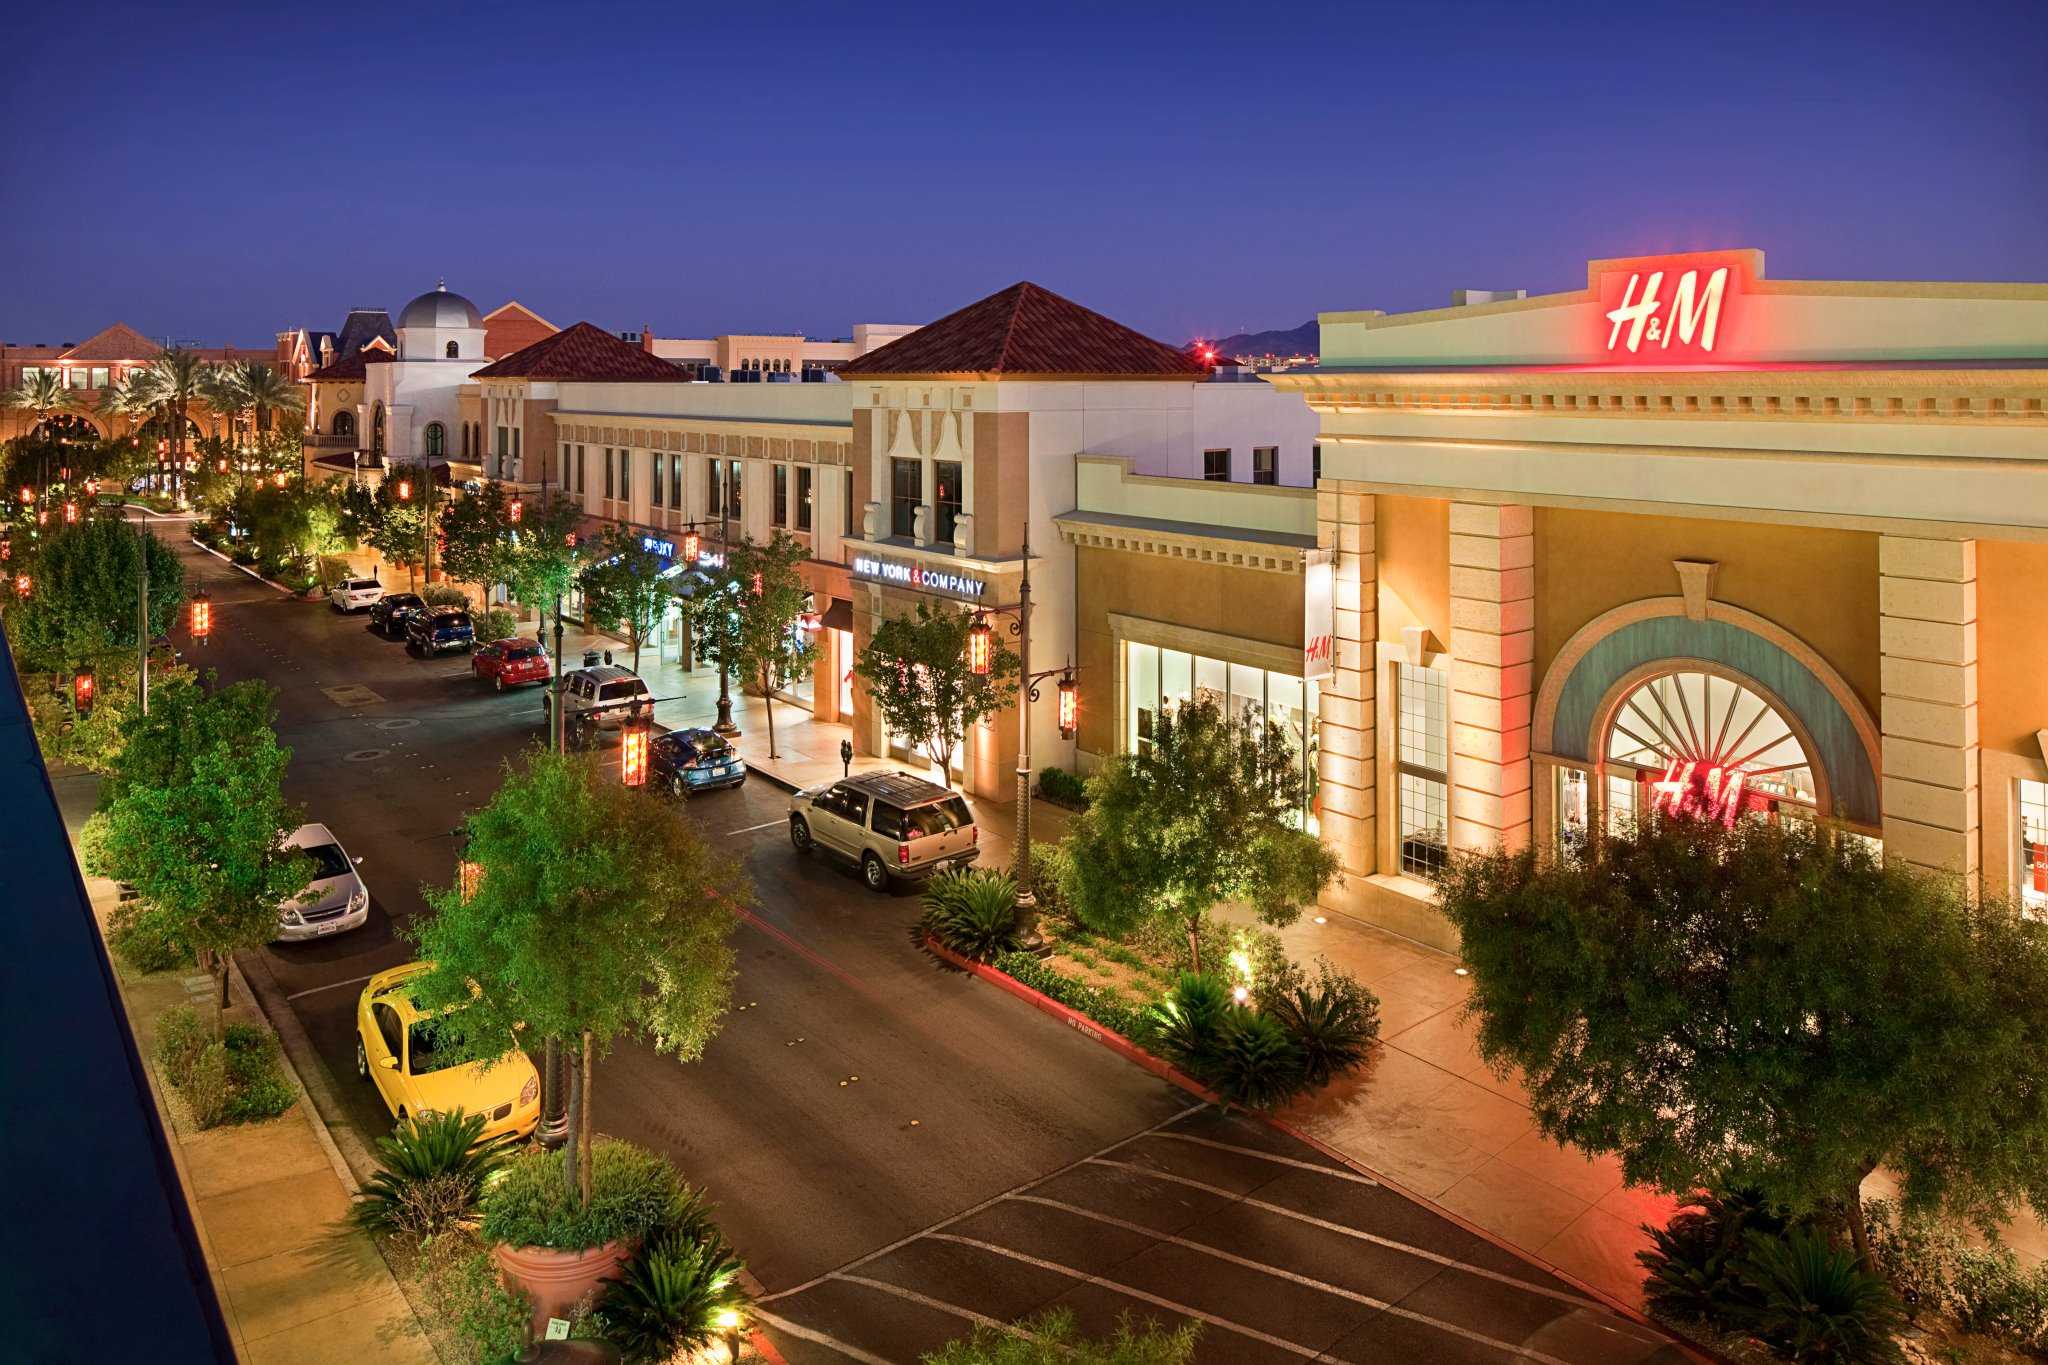 Town Square streets pictured at night events and discounts